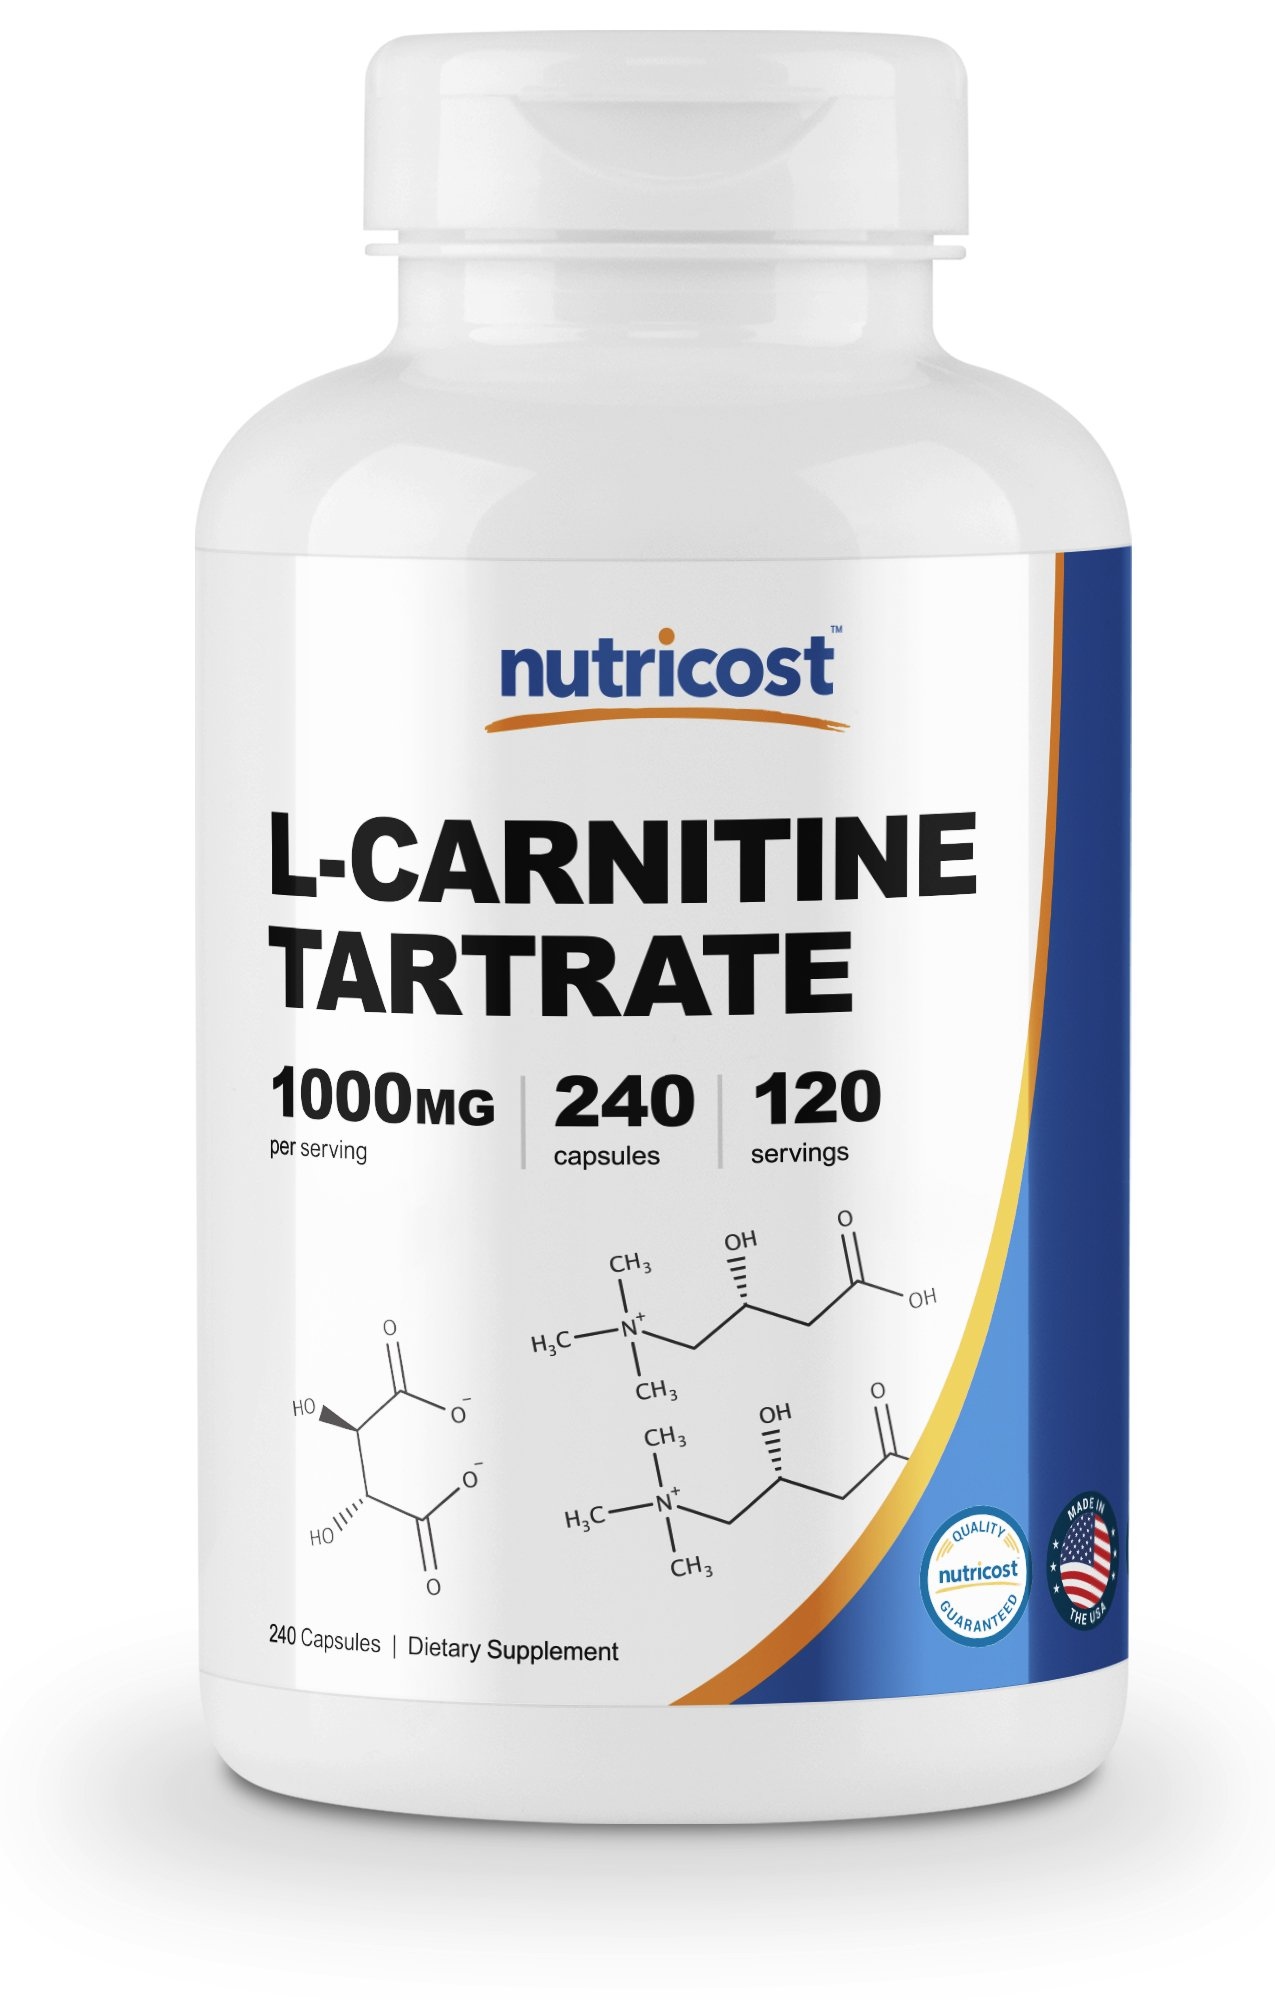 Nutricost L-Carnitine Tartrate 500mg, 240 Capsules - 1000mg per Serving by Nutricost